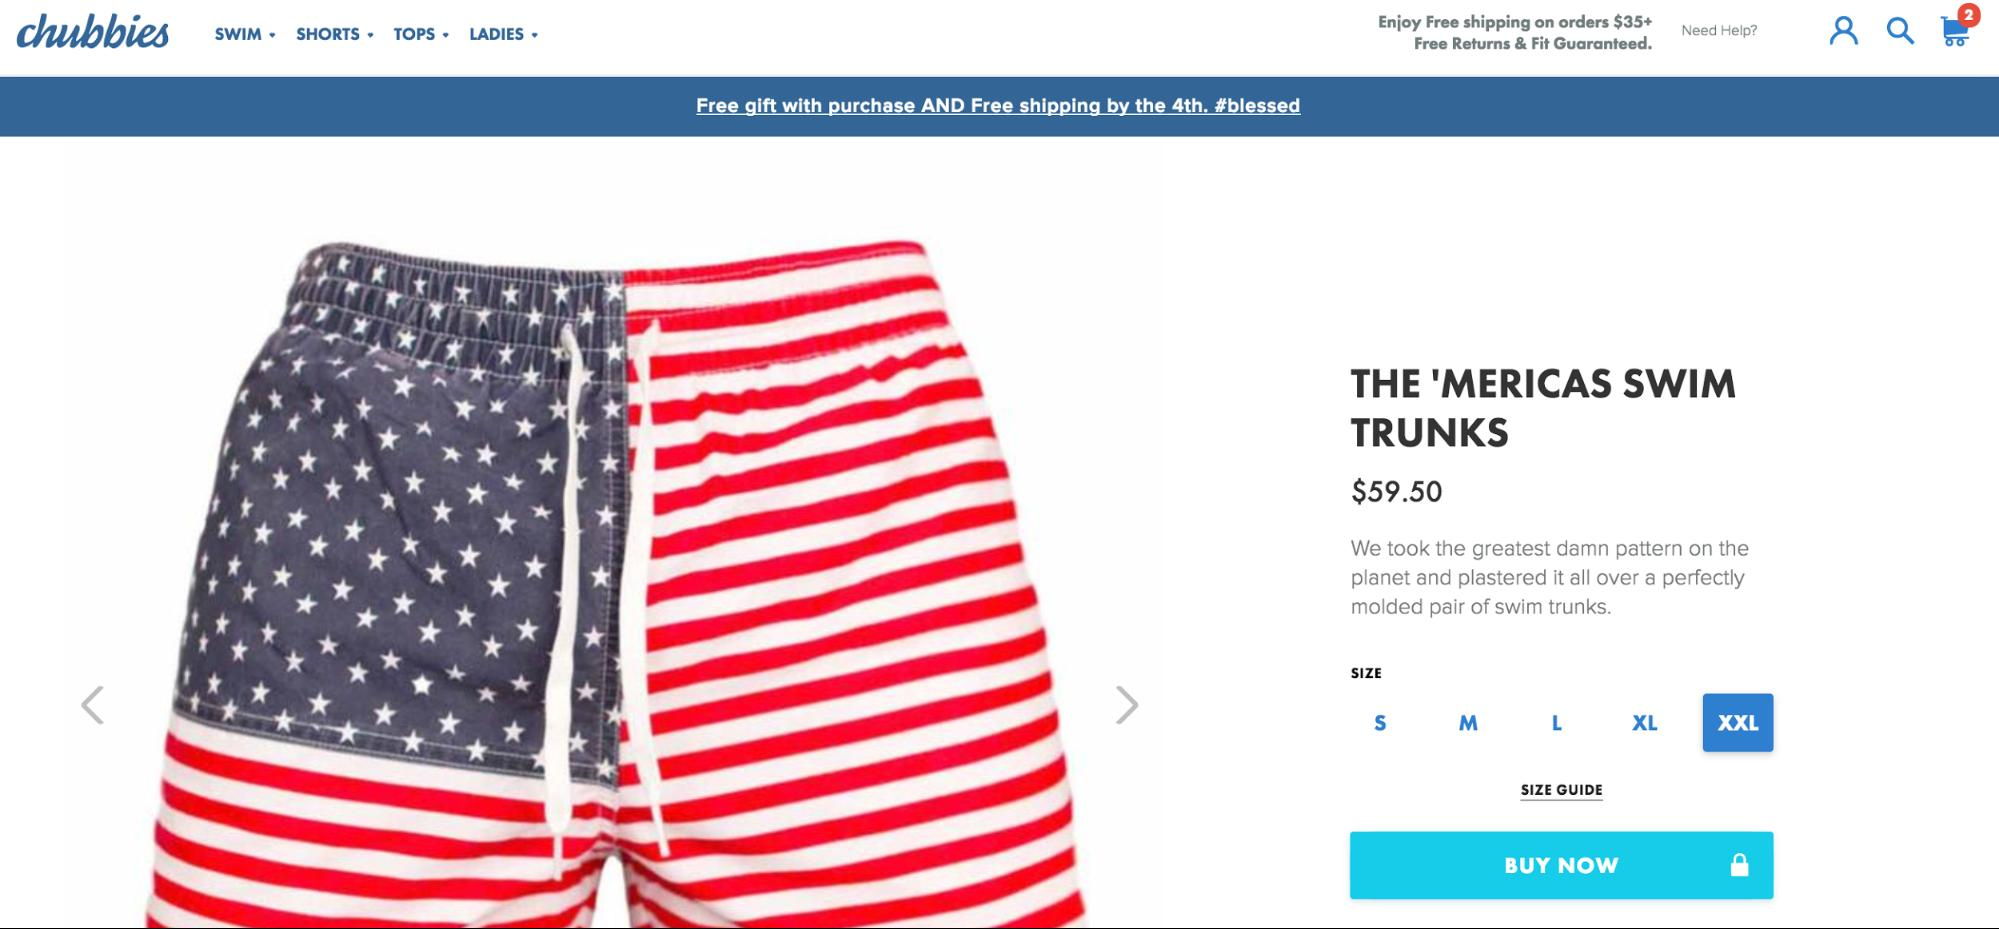 Chubbies product page